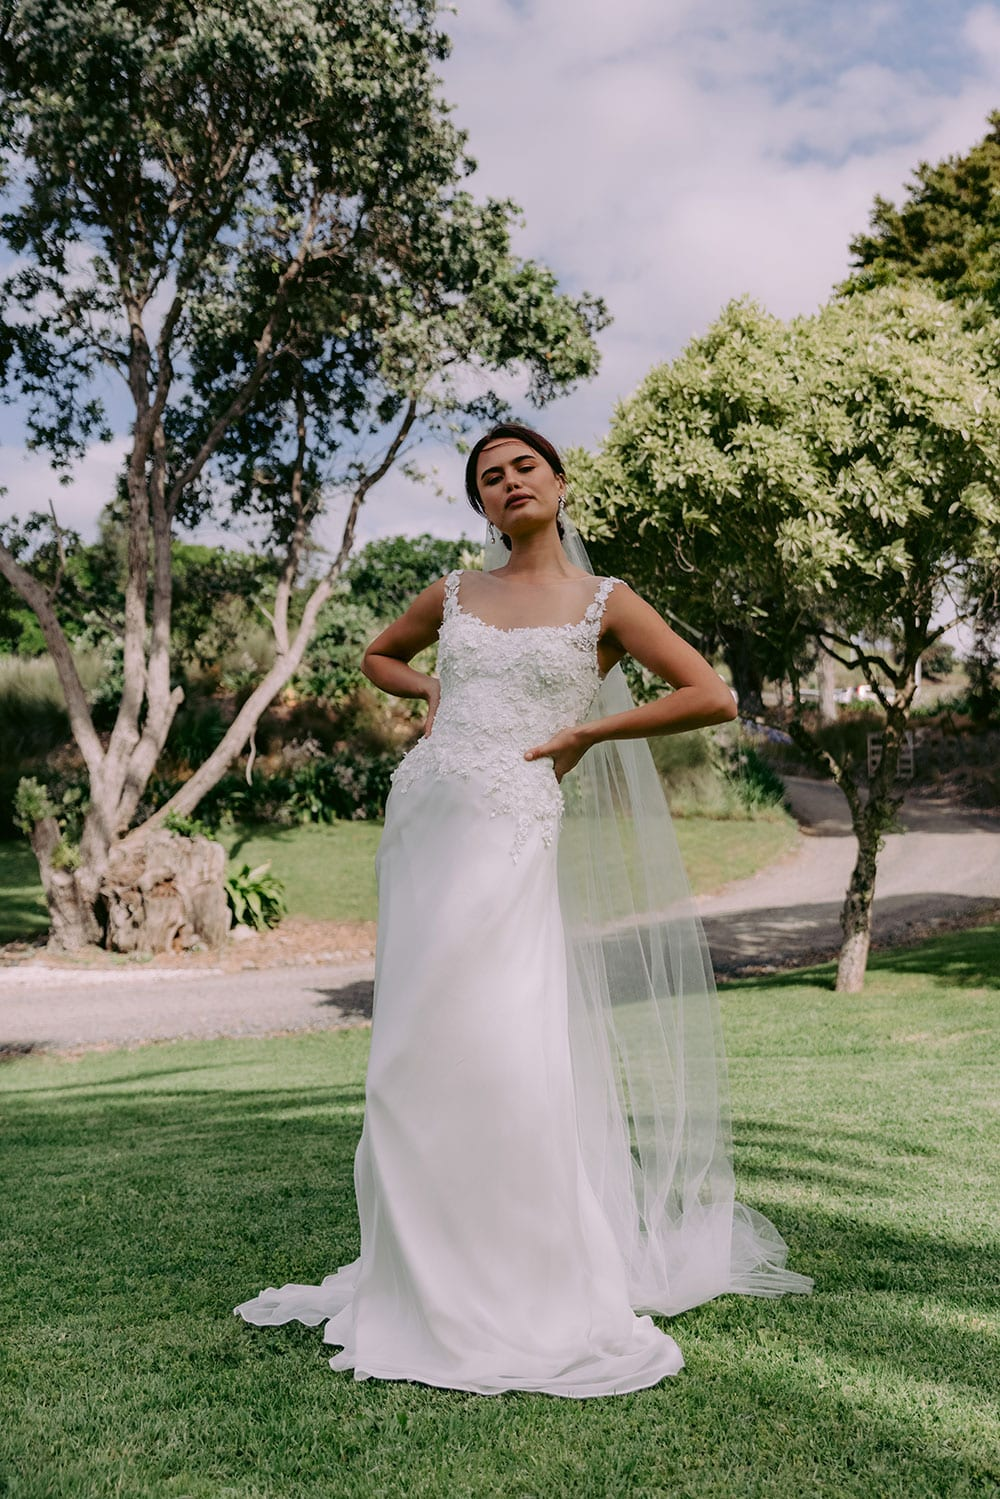 Madison Wedding gown from Vinka Design - Flattering & timeless wedding dress with lace bodice that trails into a dreamy A-line silk chiffon skirt. Illusion neckline with lace trailing up the shoulder and decorating the back. Model wearing gown with veil in gardens showing full dress.